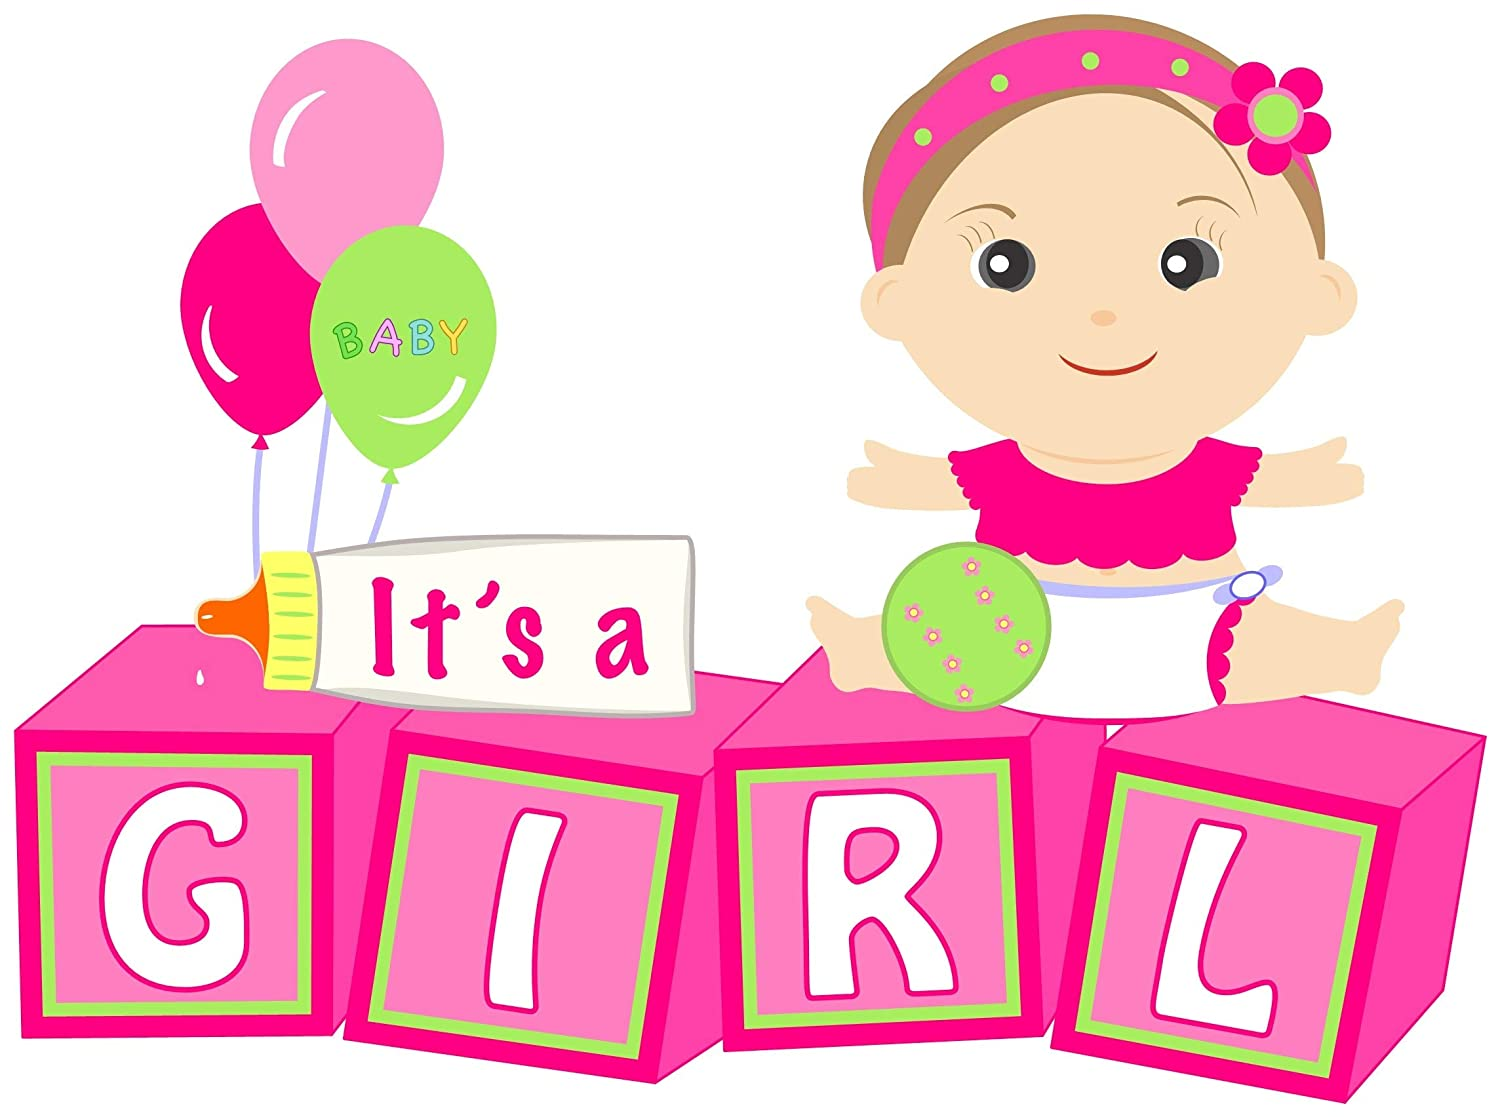 its a baby girl message